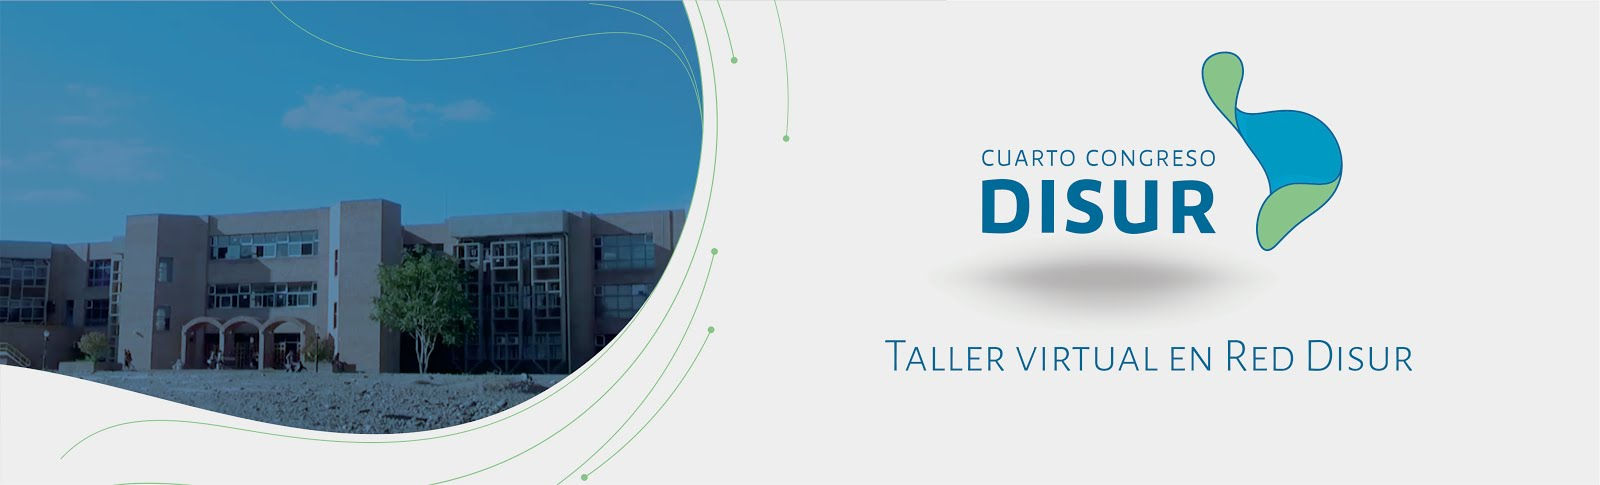 Taller Virtual en Red Disur